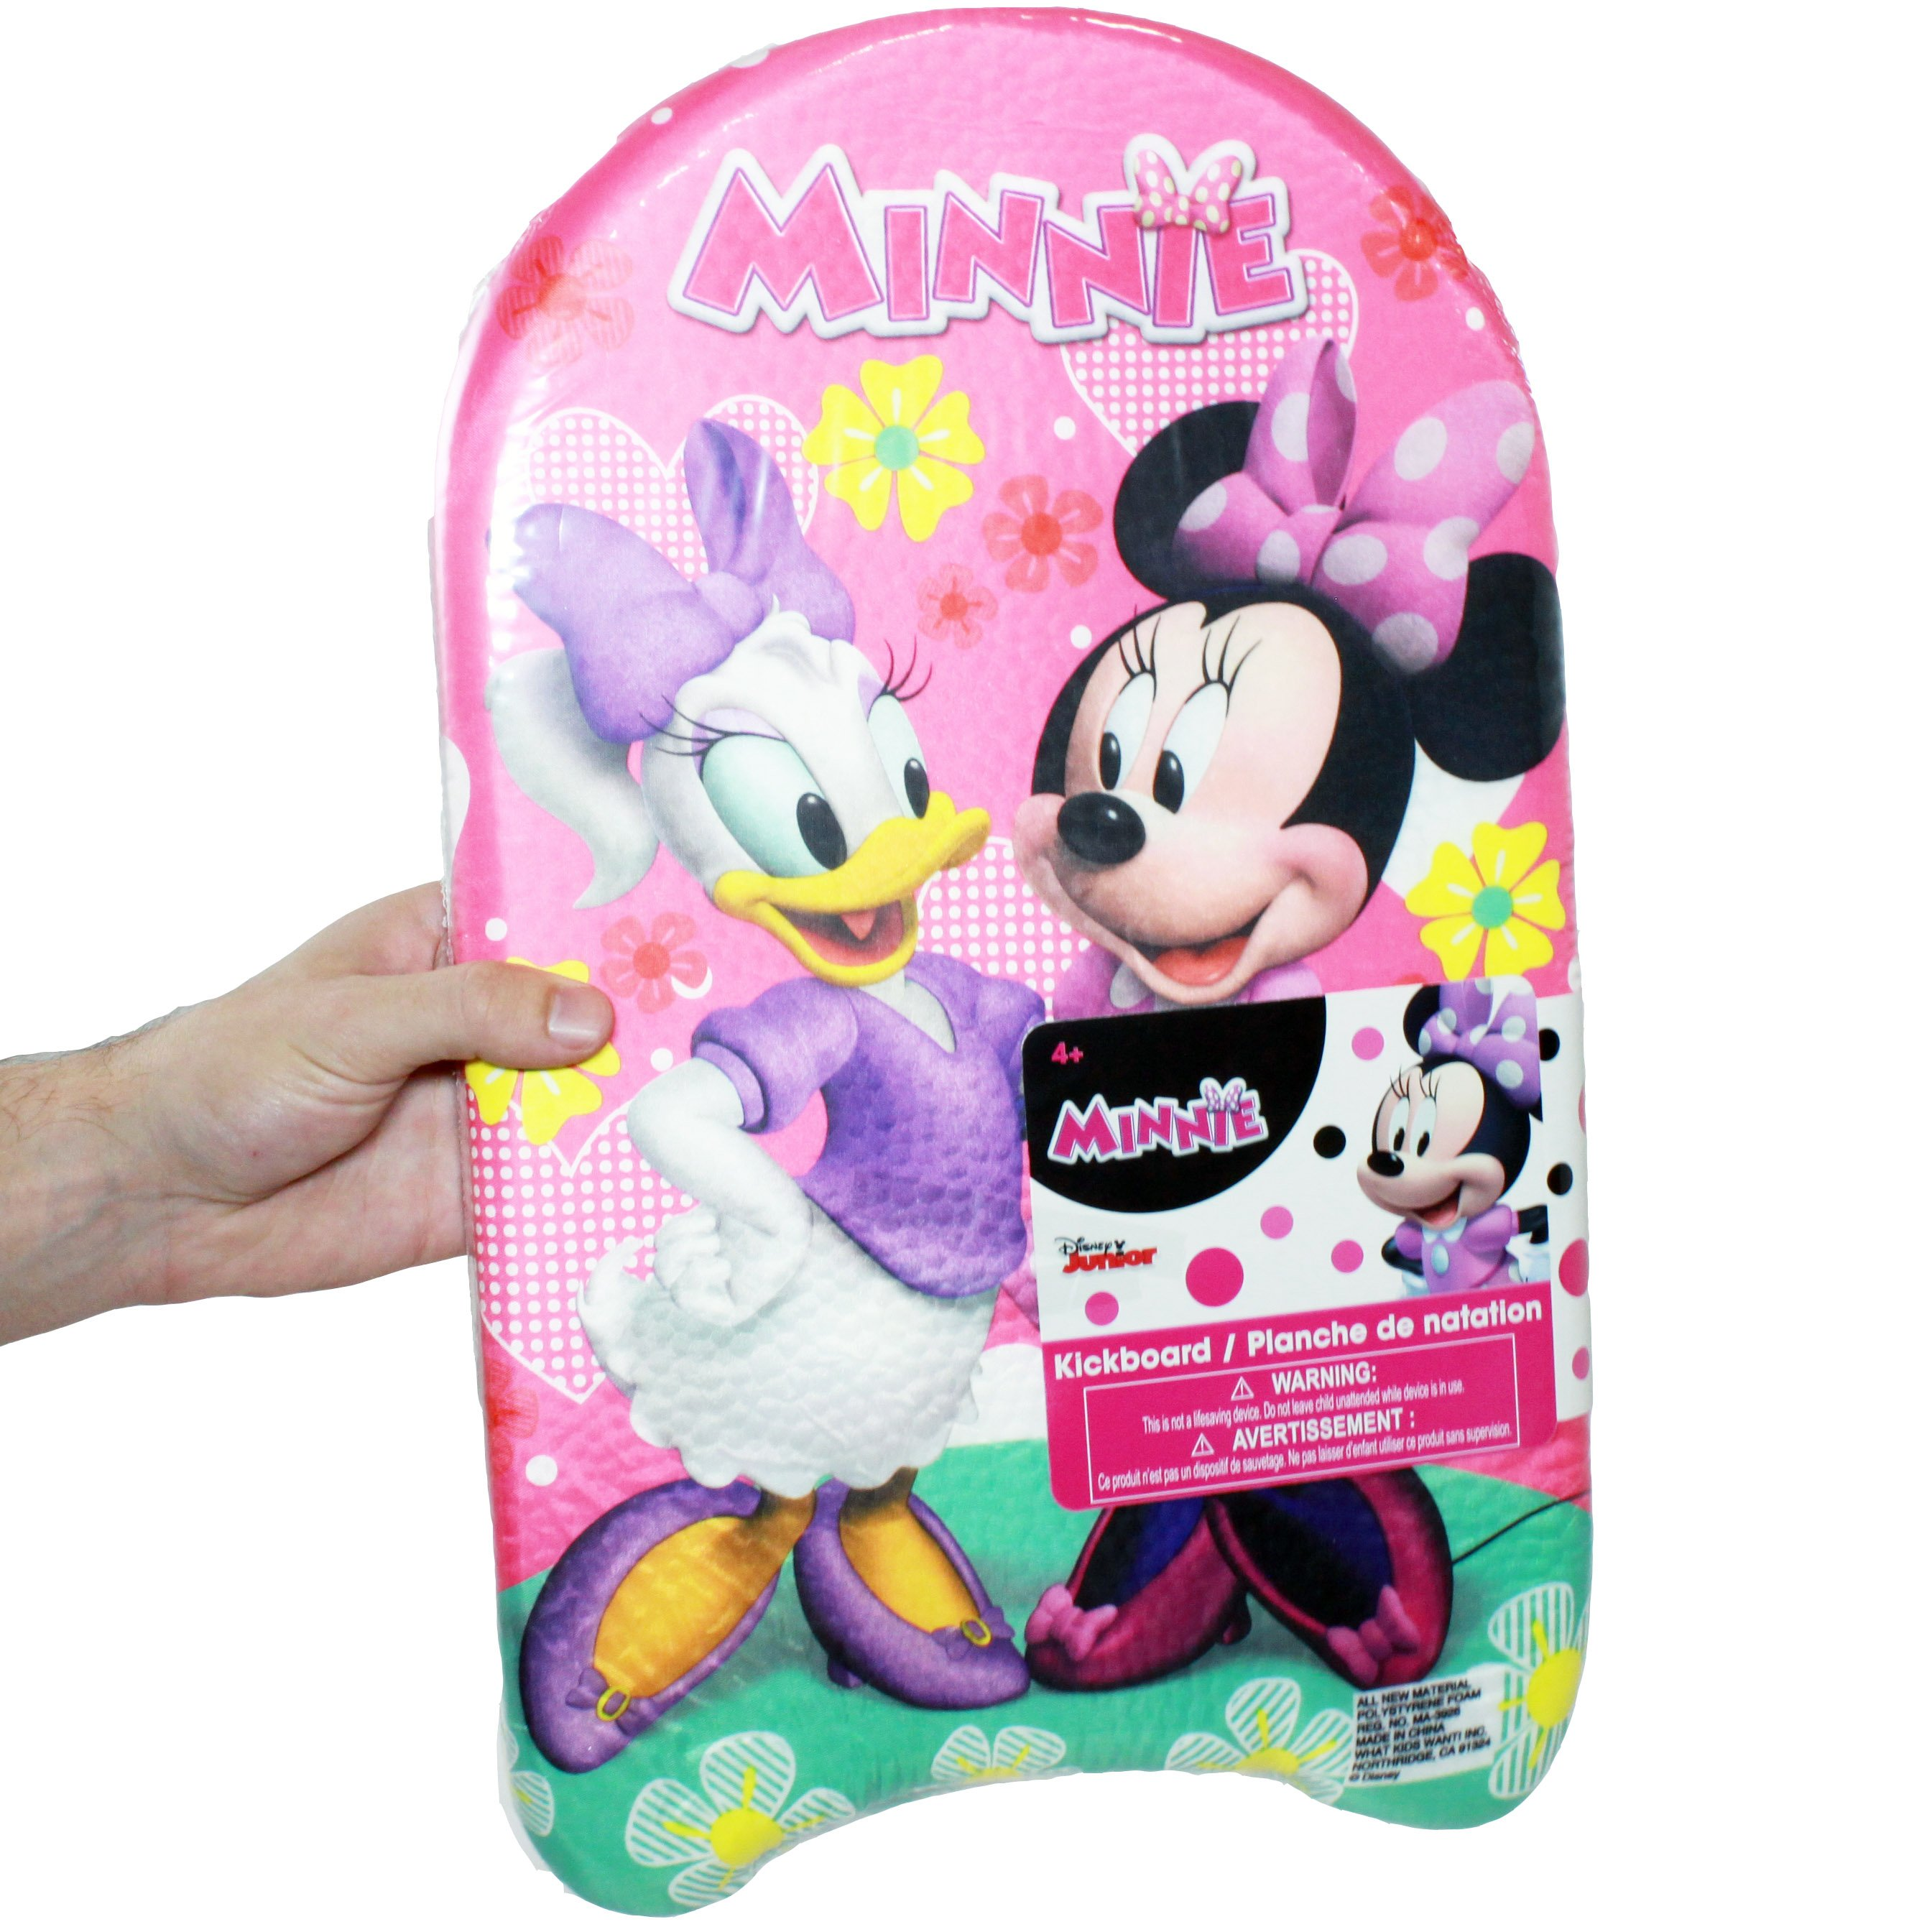 "Minnie Bowtique Foam Kickboard, 17"" x 10.5"""